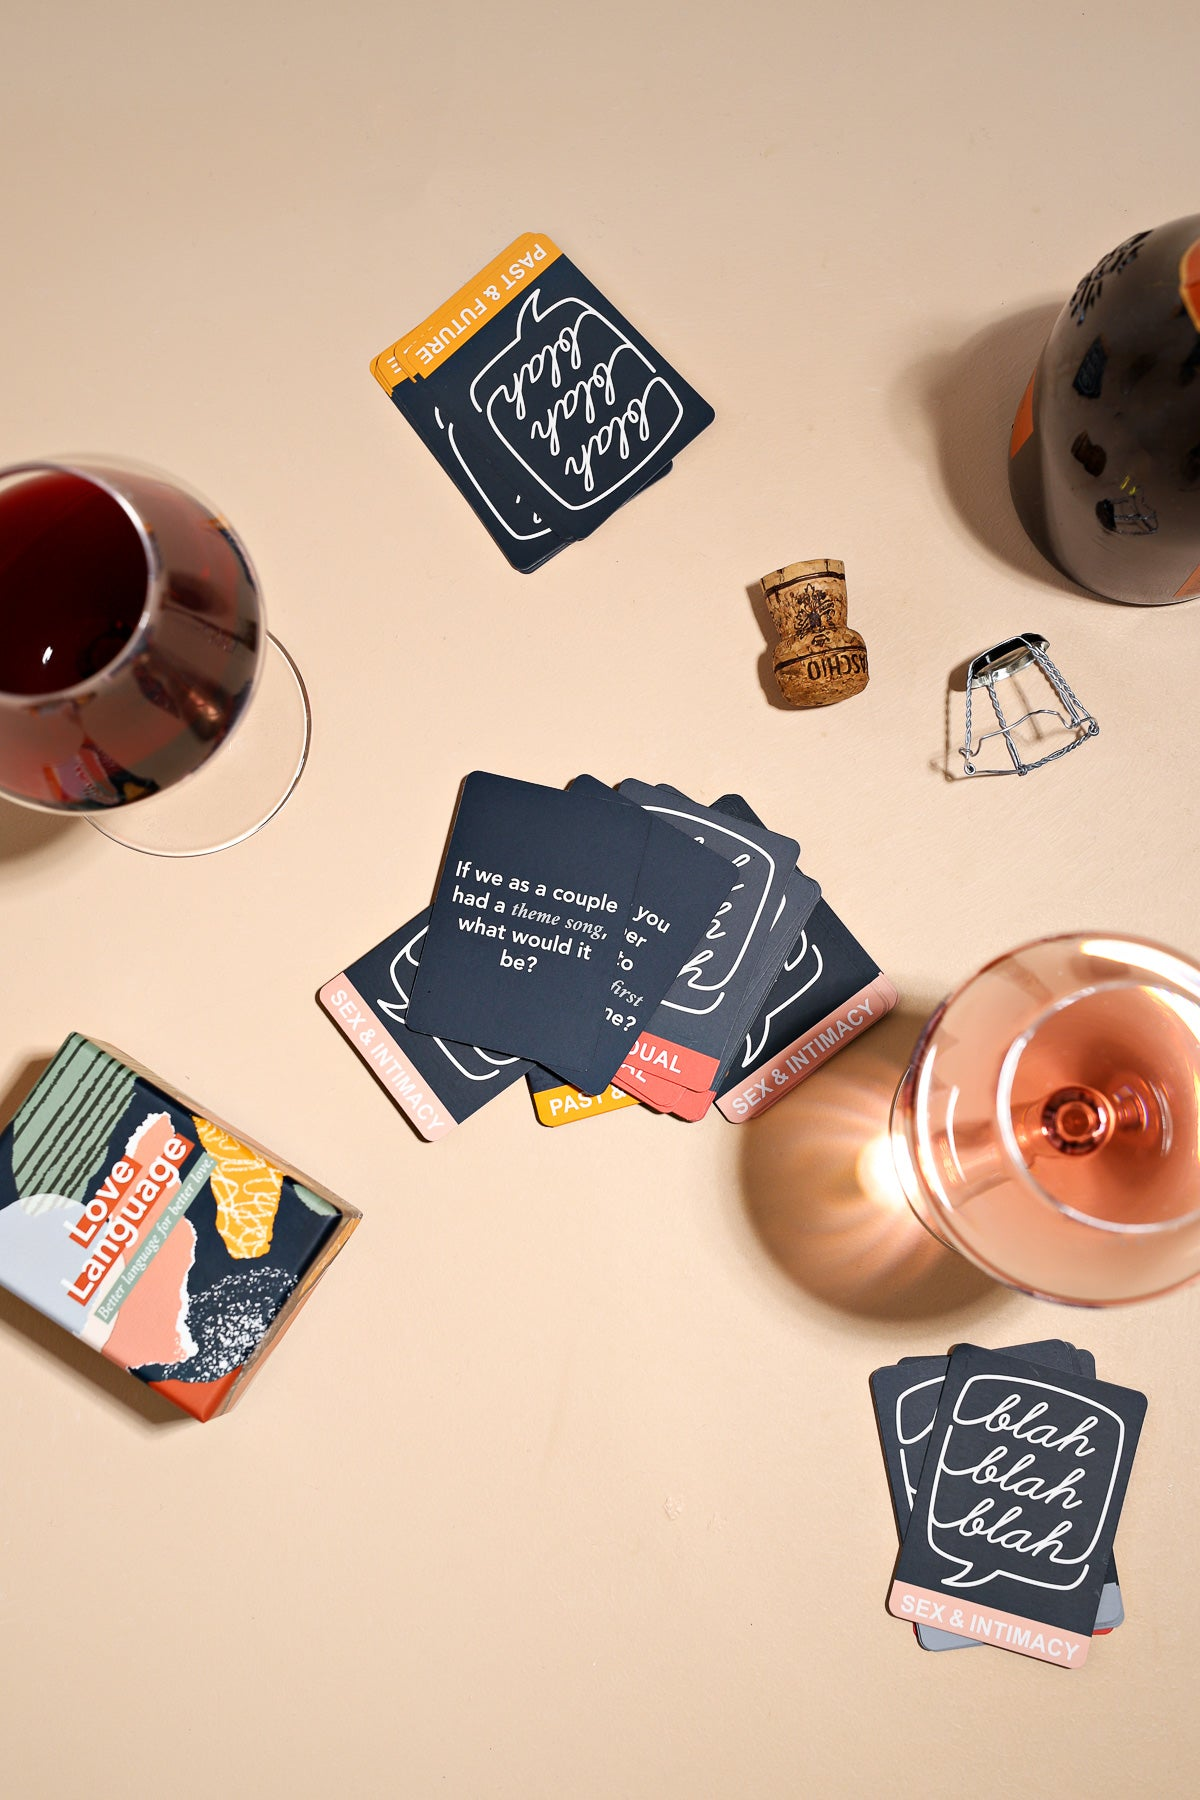 Wine glasses and Love Language Couples, the best conversation starter and icebreaker game for date night and bonding